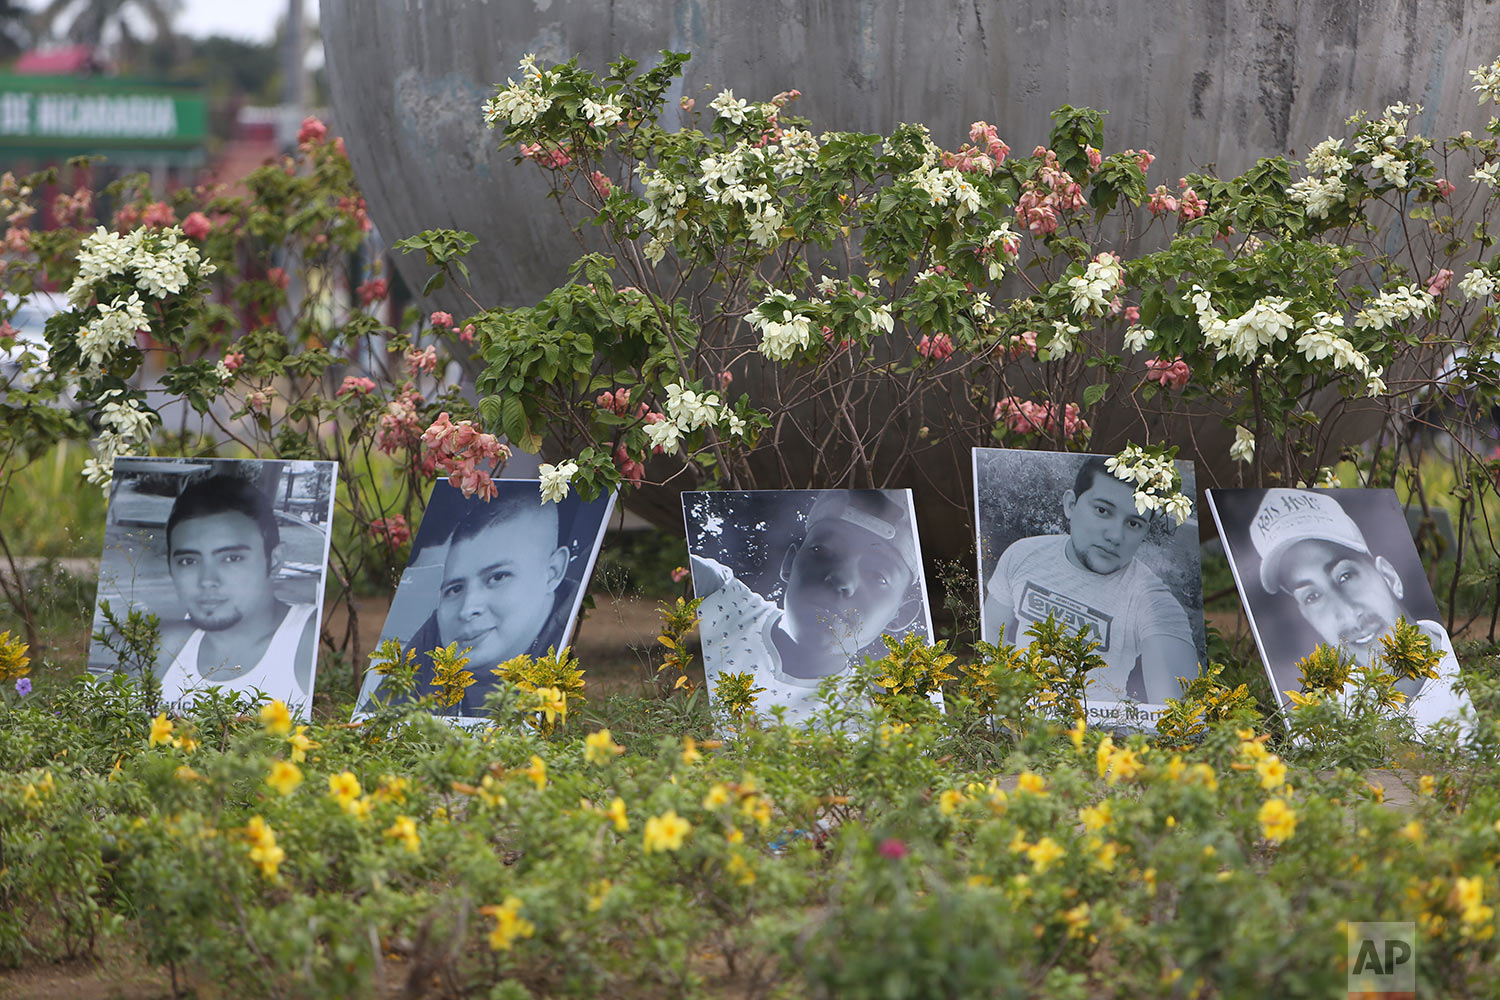 Photos of the dead are displayed in a roundabout In Managua, Nicaragua, Tuesday, April 24, 2018. Human rights groups say clashes between police and protesters left nearly 30 dead since people took to the streets last week to oppose tax hikes and benefit cuts meant to shore up the ailing social security system. (AP Photo/Alfredo Zuniga)